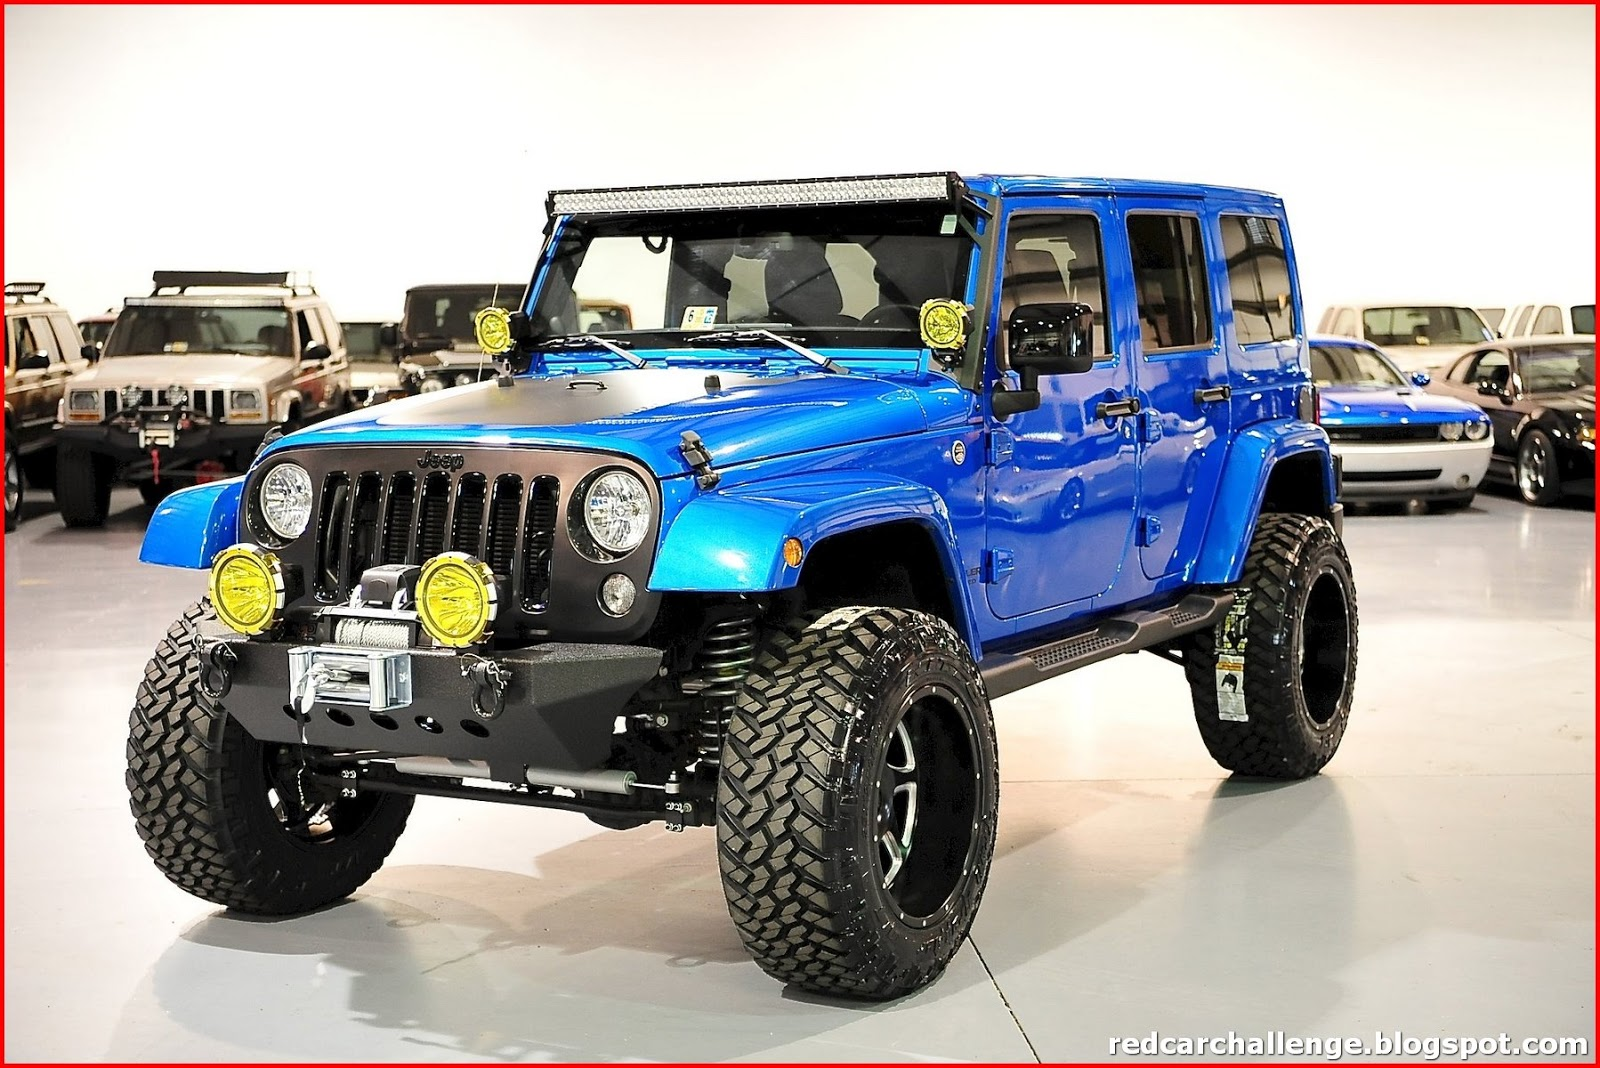 Hydro Blue Jeep Wrangler Unlimited